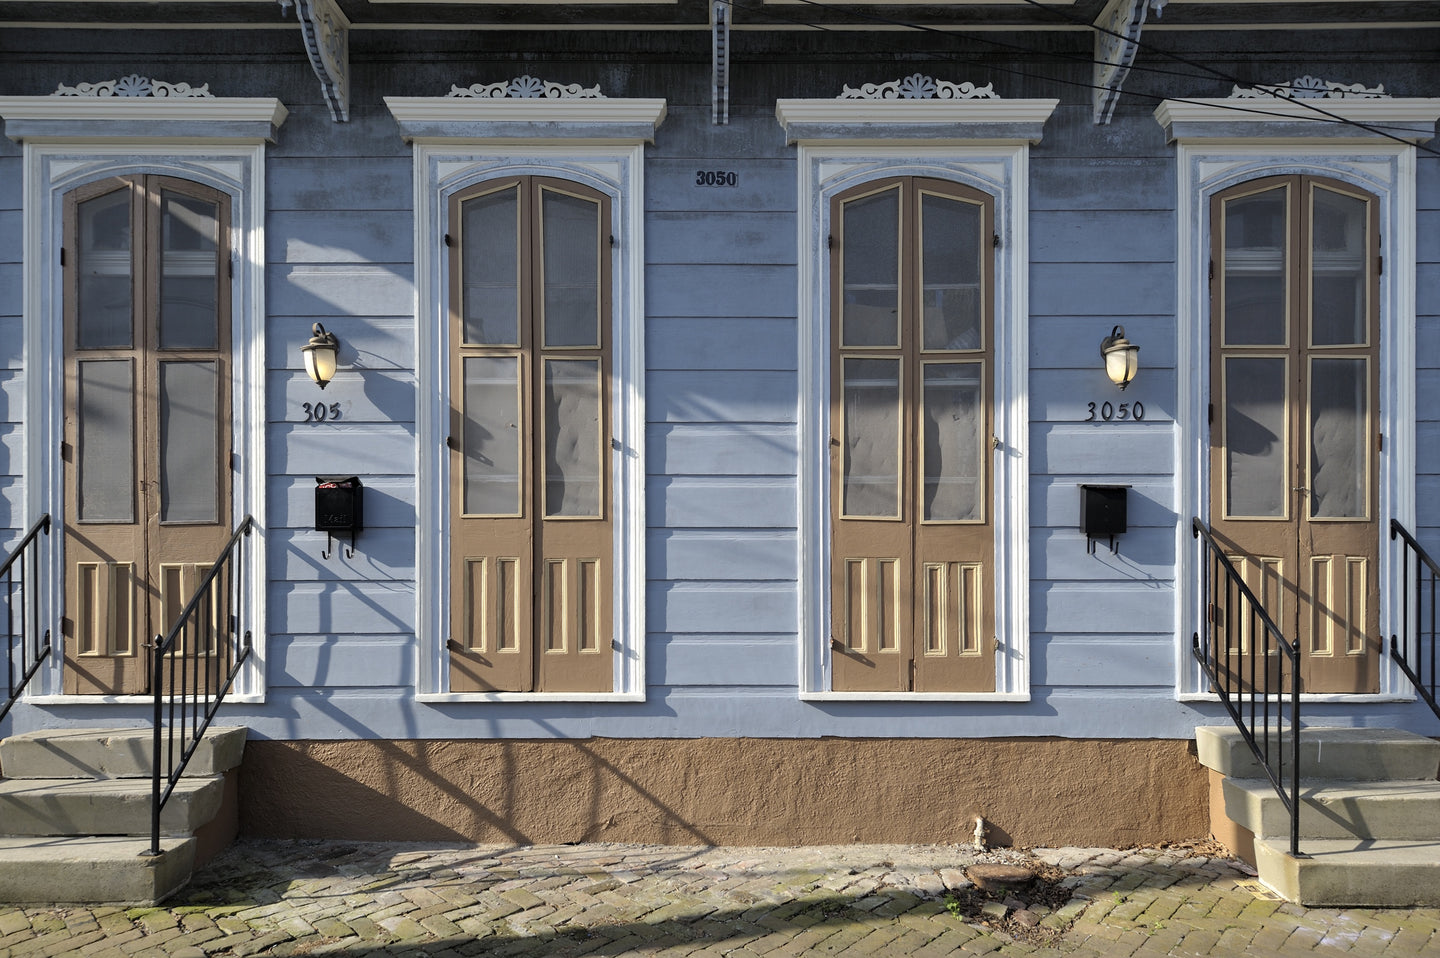 Bywater, New Orleans, SJS194089 (peach shutters) by Stan Strembicki